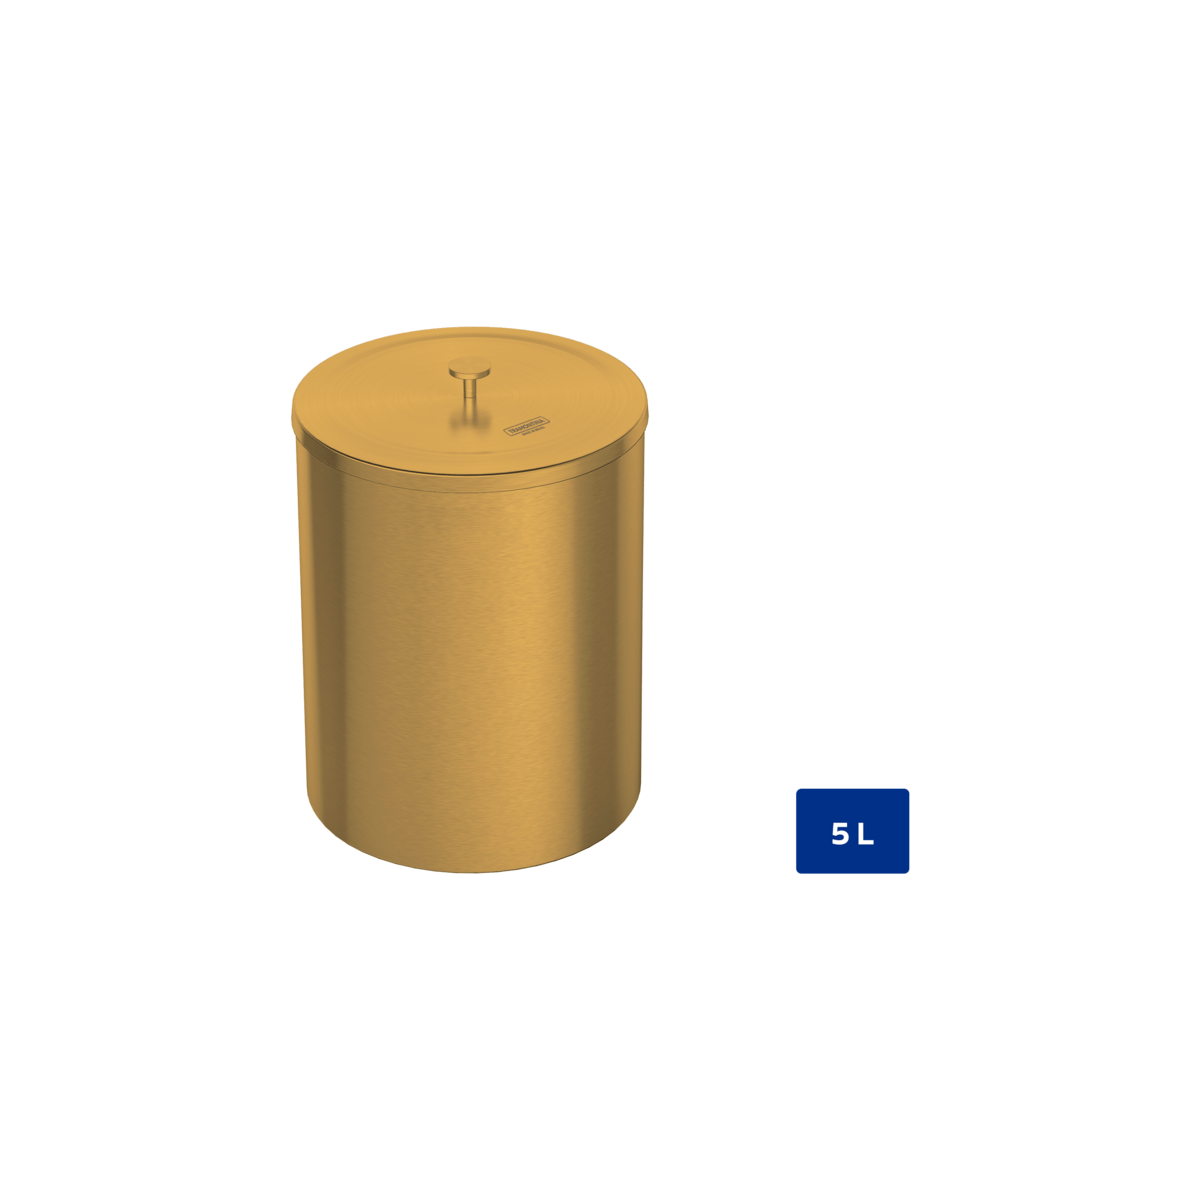 Laundry Trash Cans Tramontina 5l Útil Gold Trash Bin With Lid With A Polished Finish